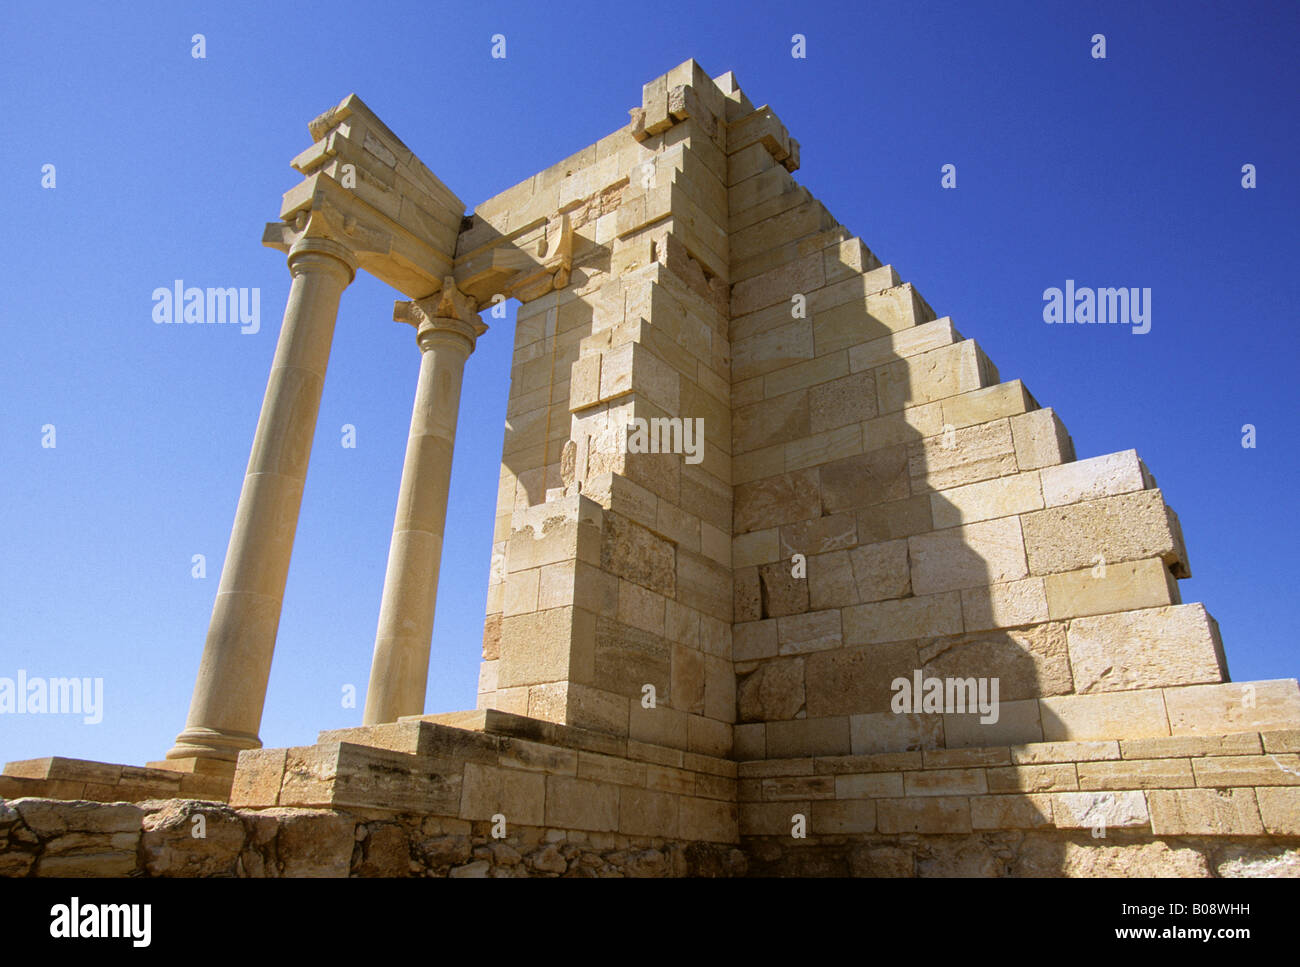 Temple of Hylates (later likened to Apollo) in Kourion, Cyprus - Stock Image